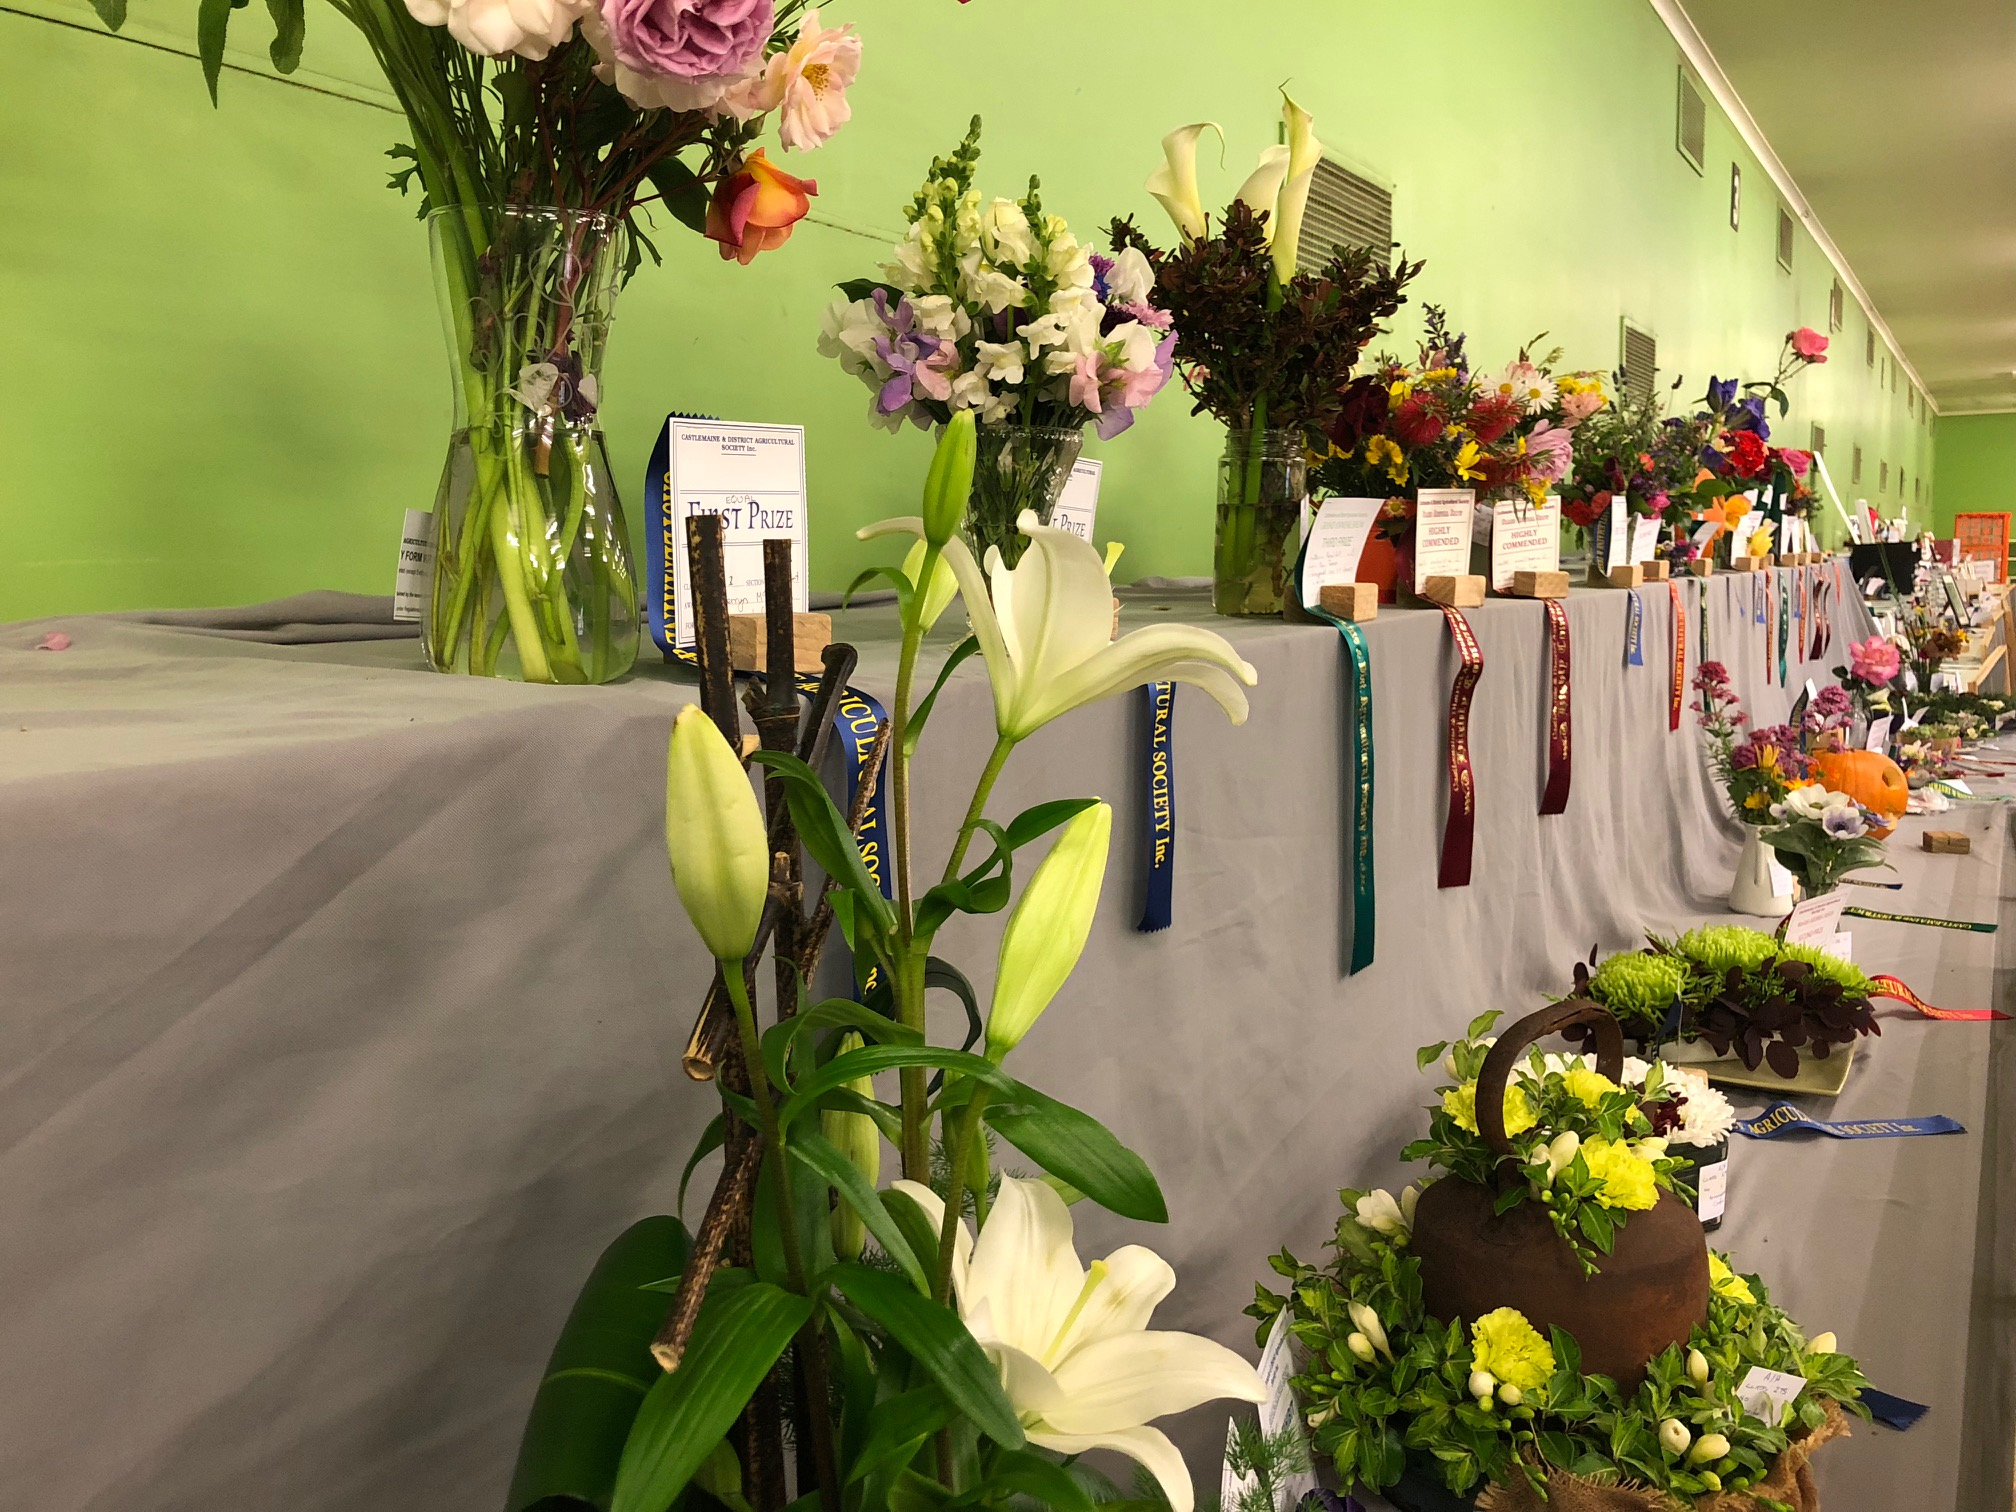 Flowers on show at the Castlemaine Annual Show